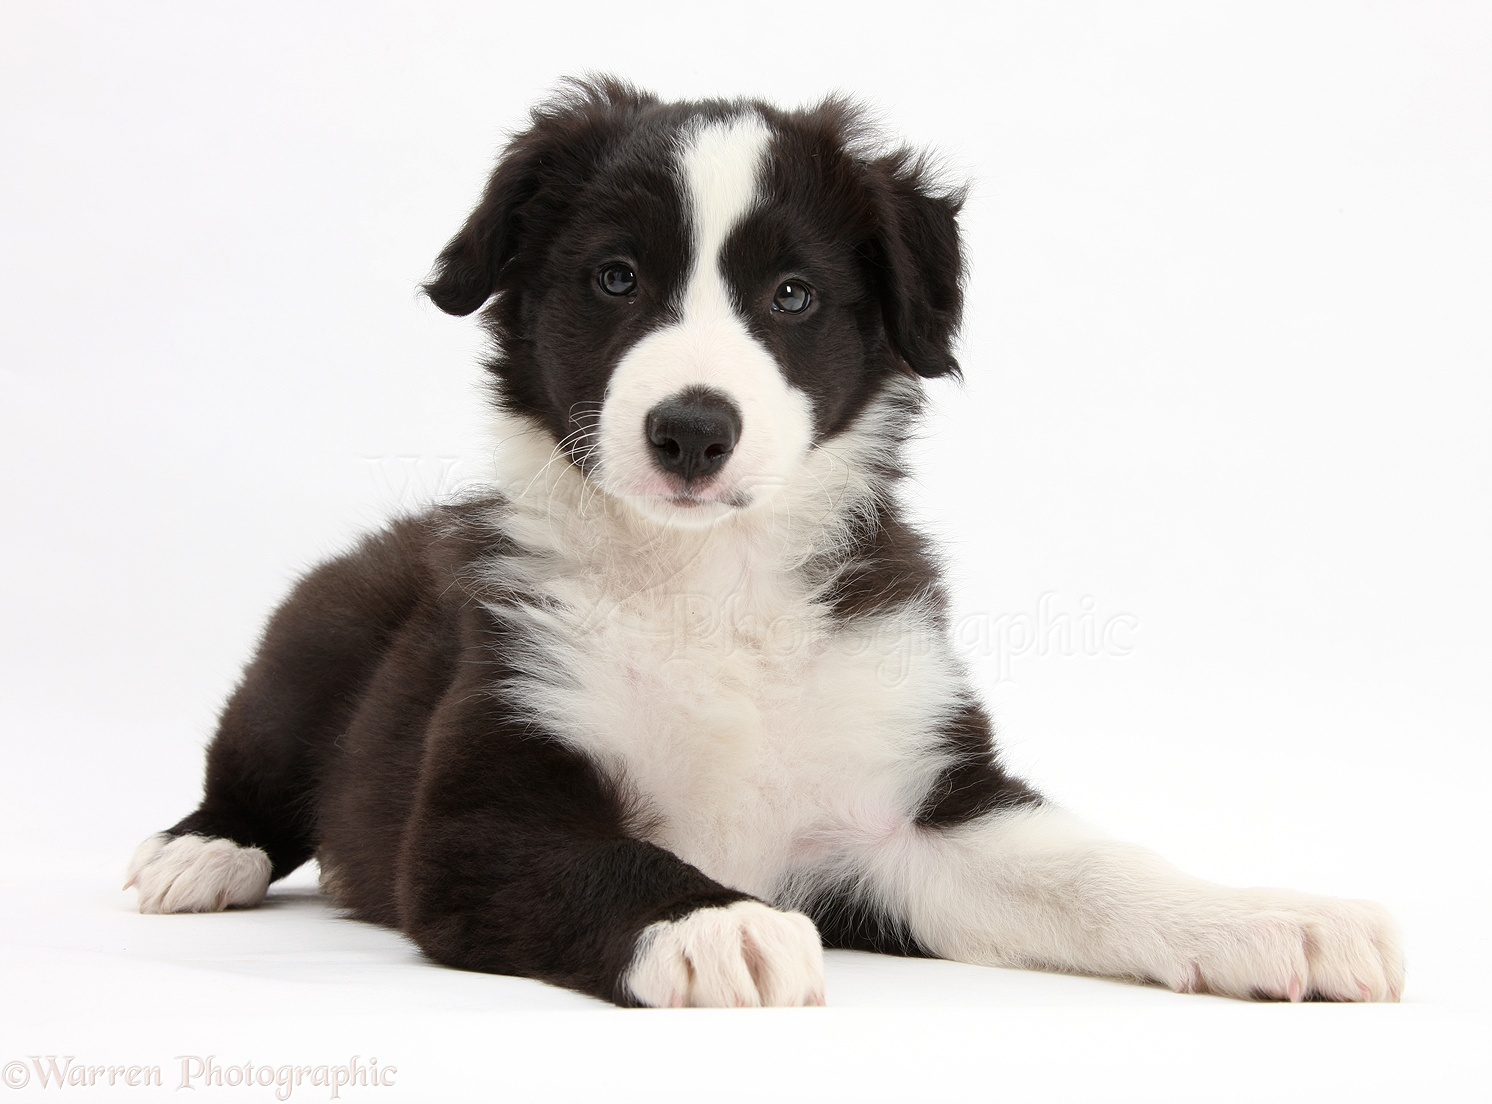 41602 Cute Playful Poochon Puppy 6 Weeks Old furthermore 23153 Black And White Border Collie Pup together with 13007 as well 39661 Bulldog Pup Lying Sprawled Out And Cant Be Bothered additionally 32266 Blue Belton English Setter Pup Wearing A Santa Hat. on dog portraits